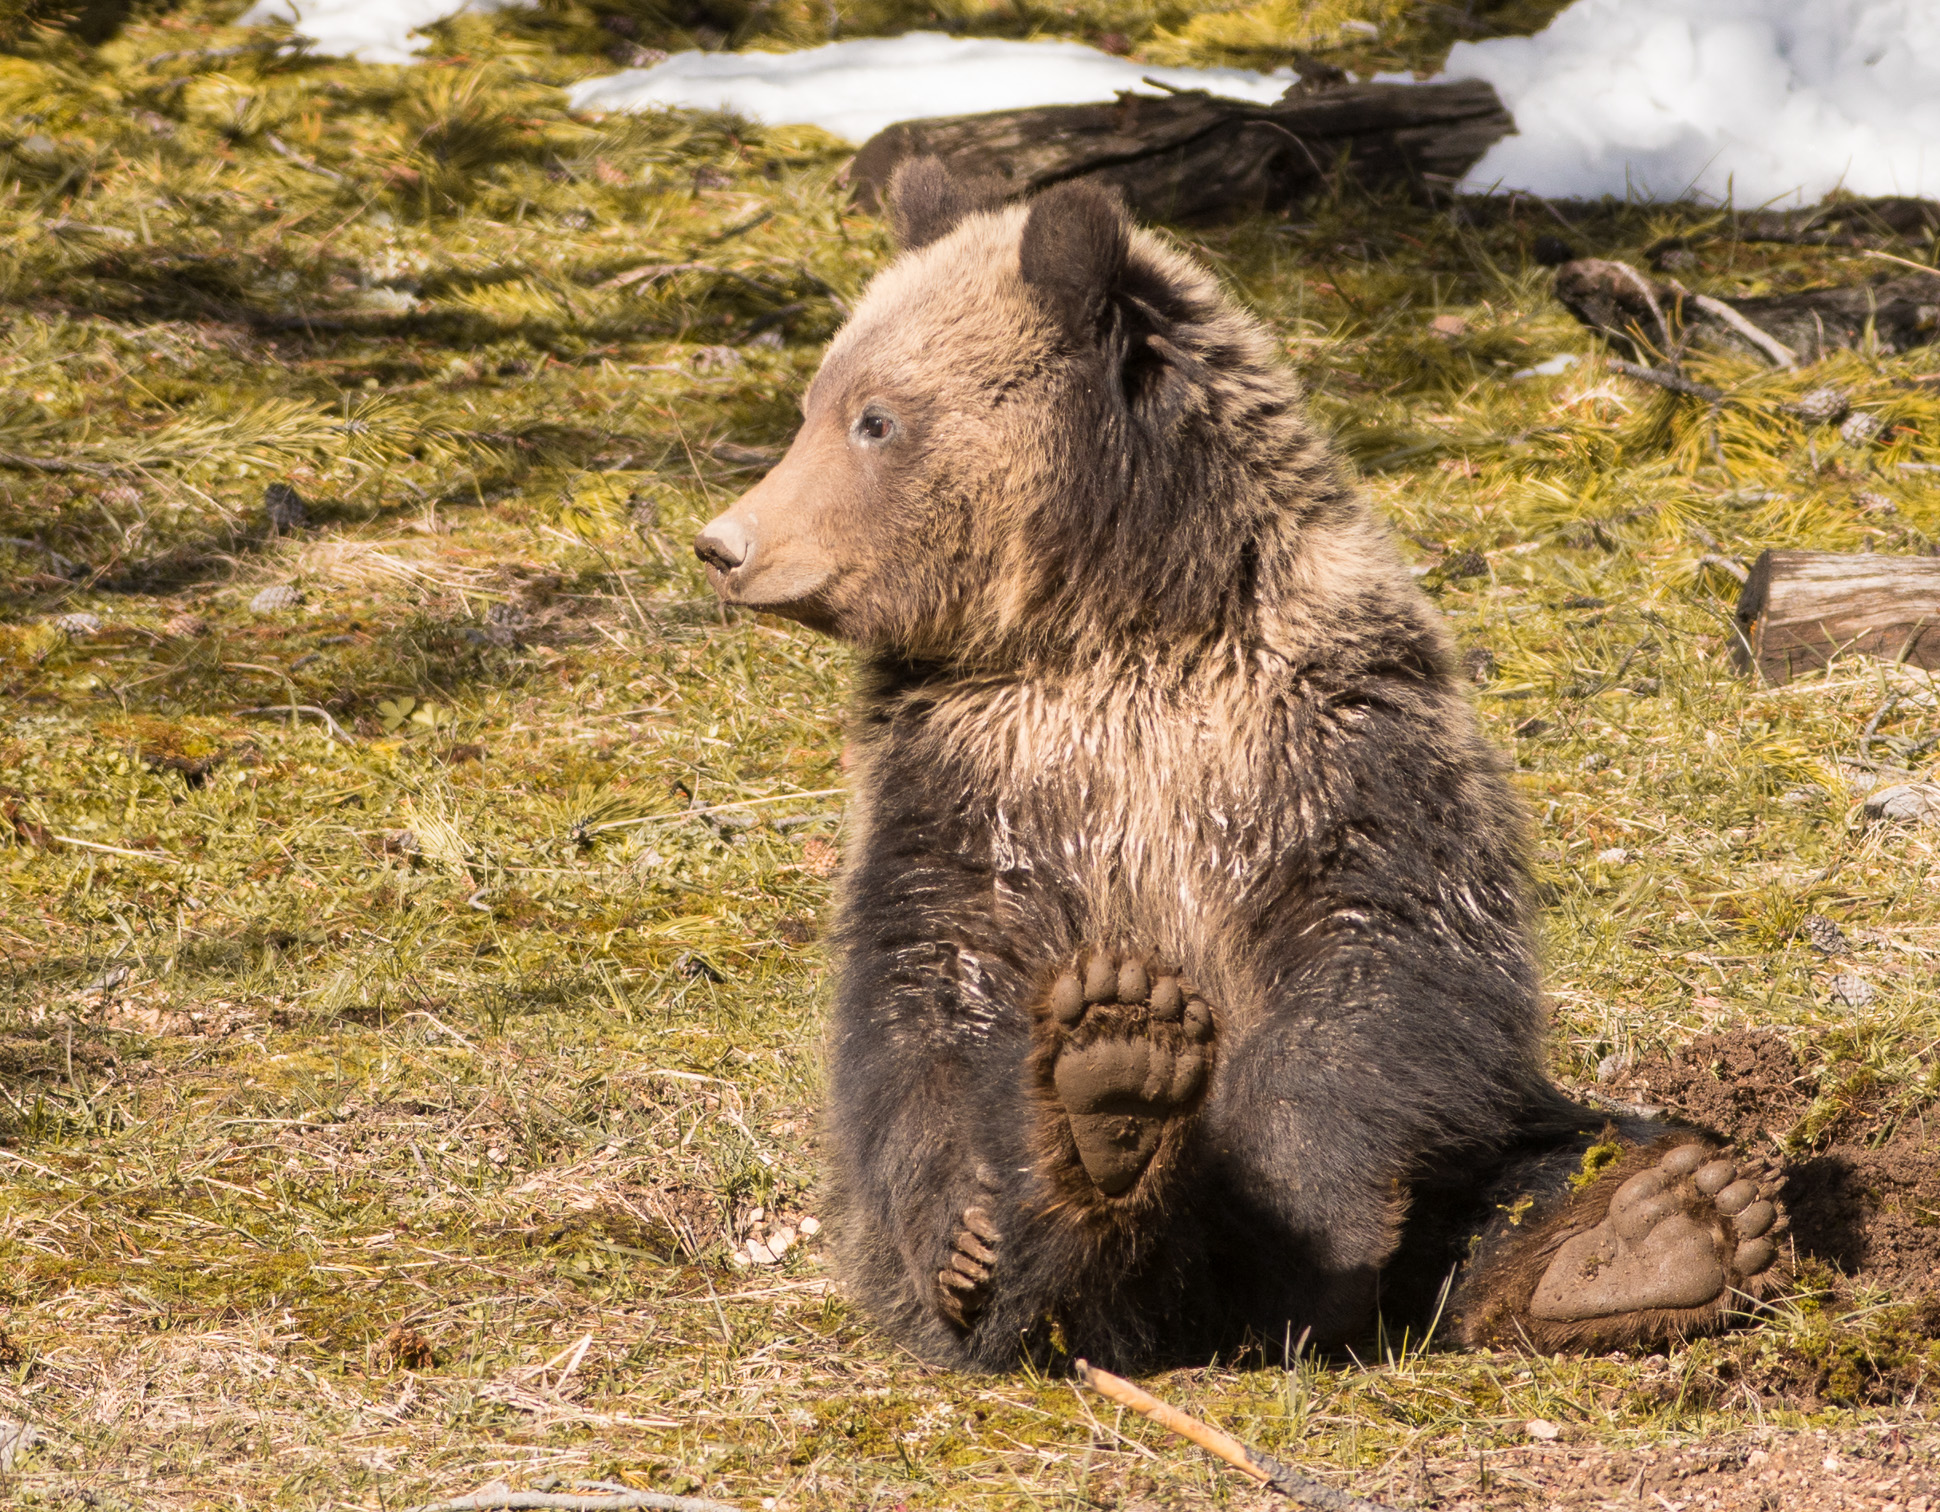 Grizzly Bear and cub Valley Girl near Roaring Mountain Yellowstone National Park WY-06487